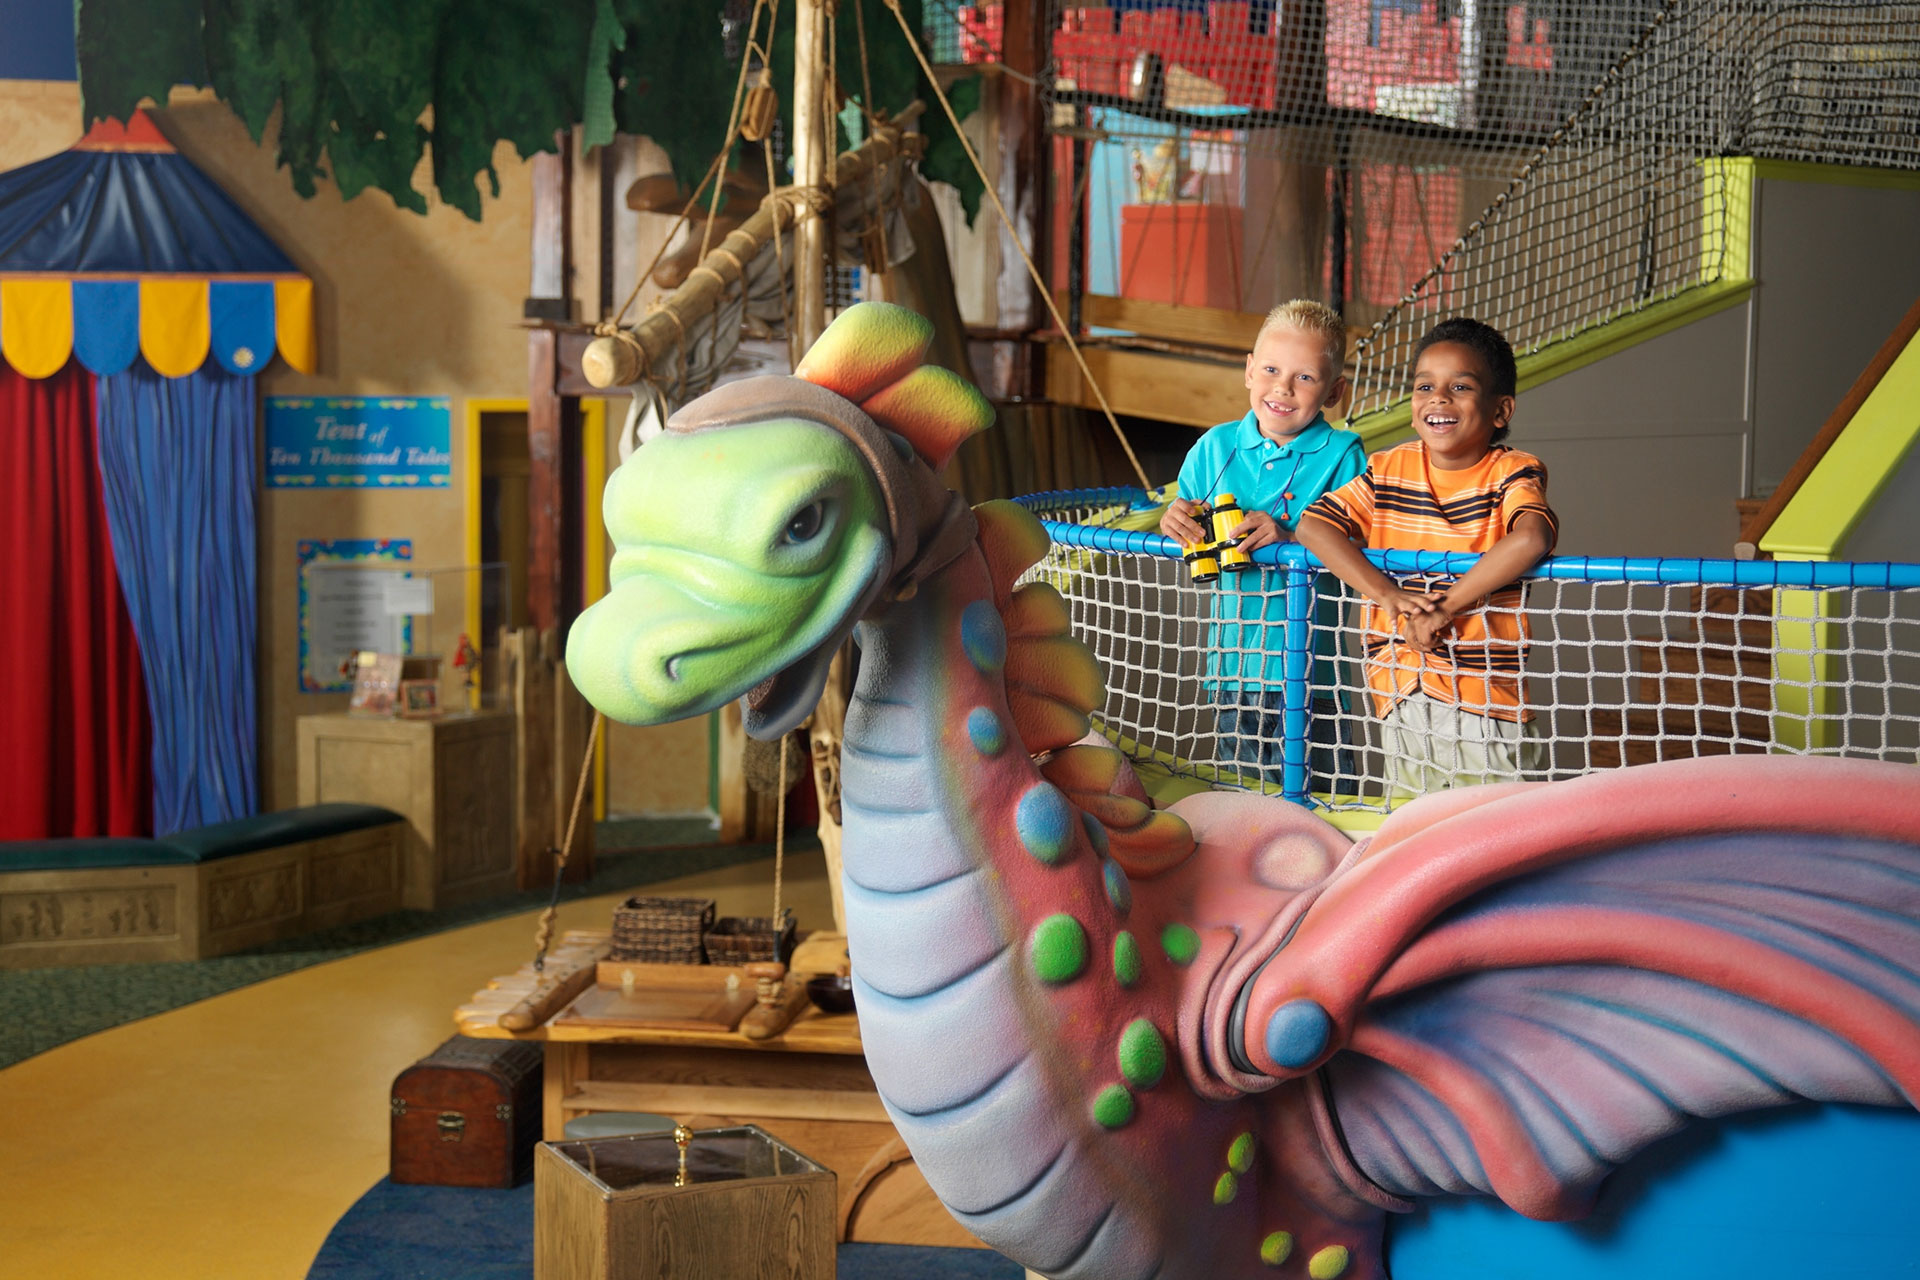 Strong Museum of Play in Rochester, New York